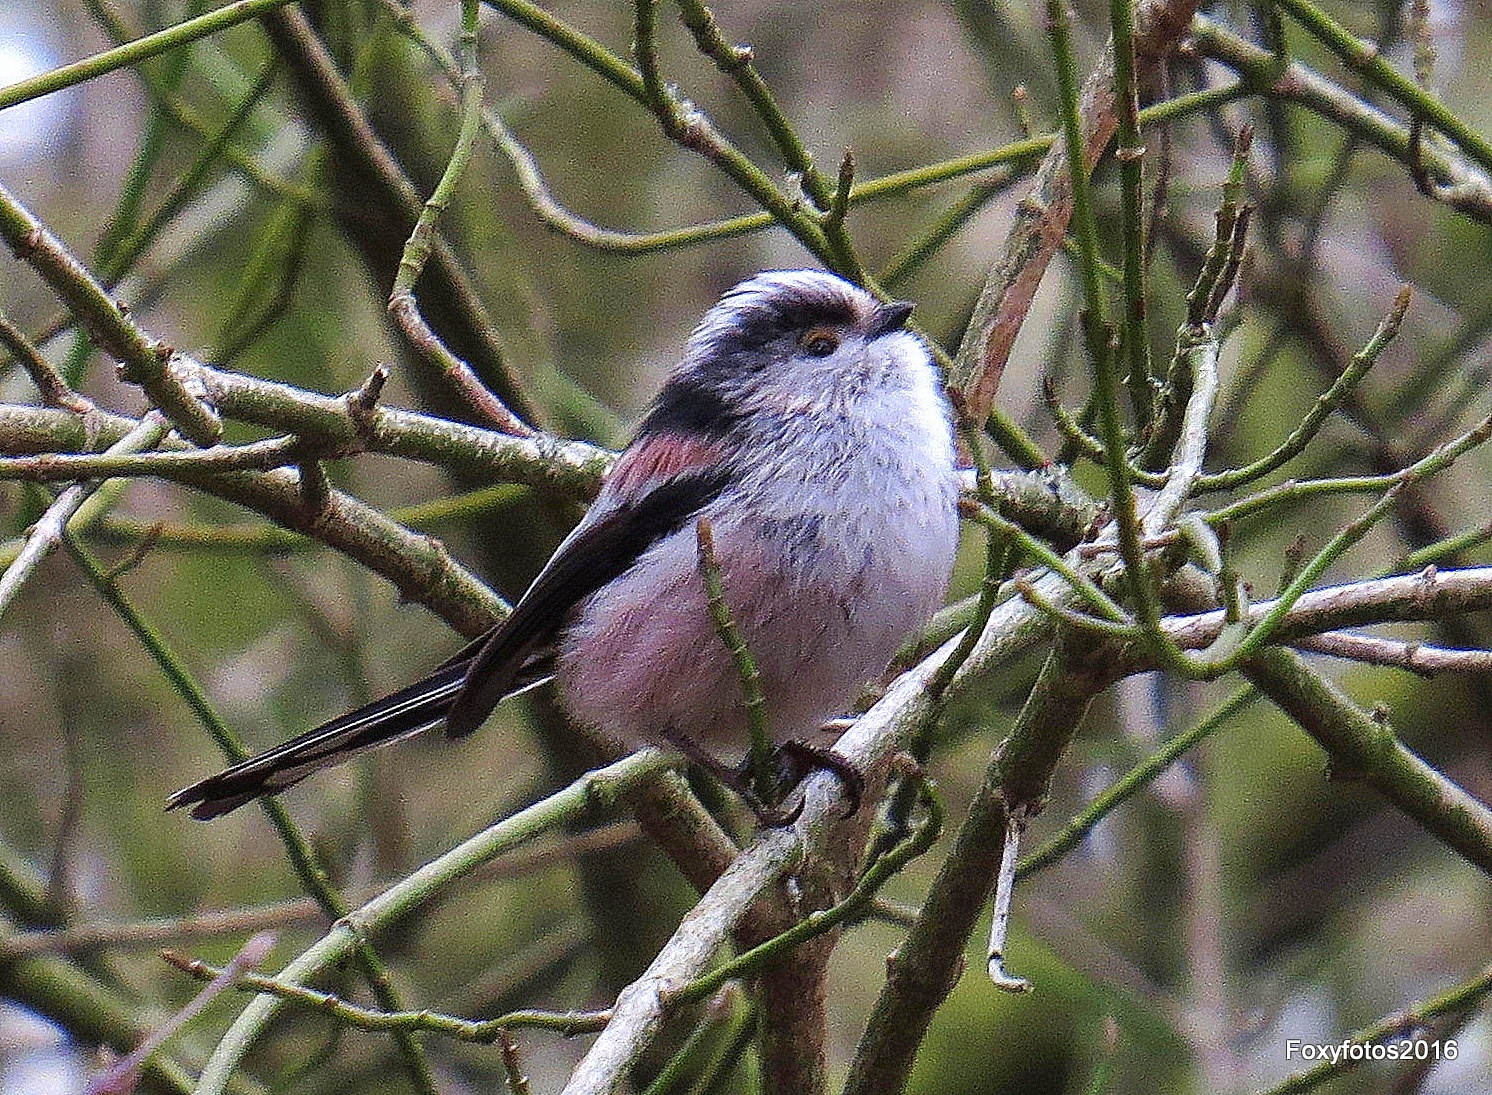 Longtailed tit by David.s.fox.9